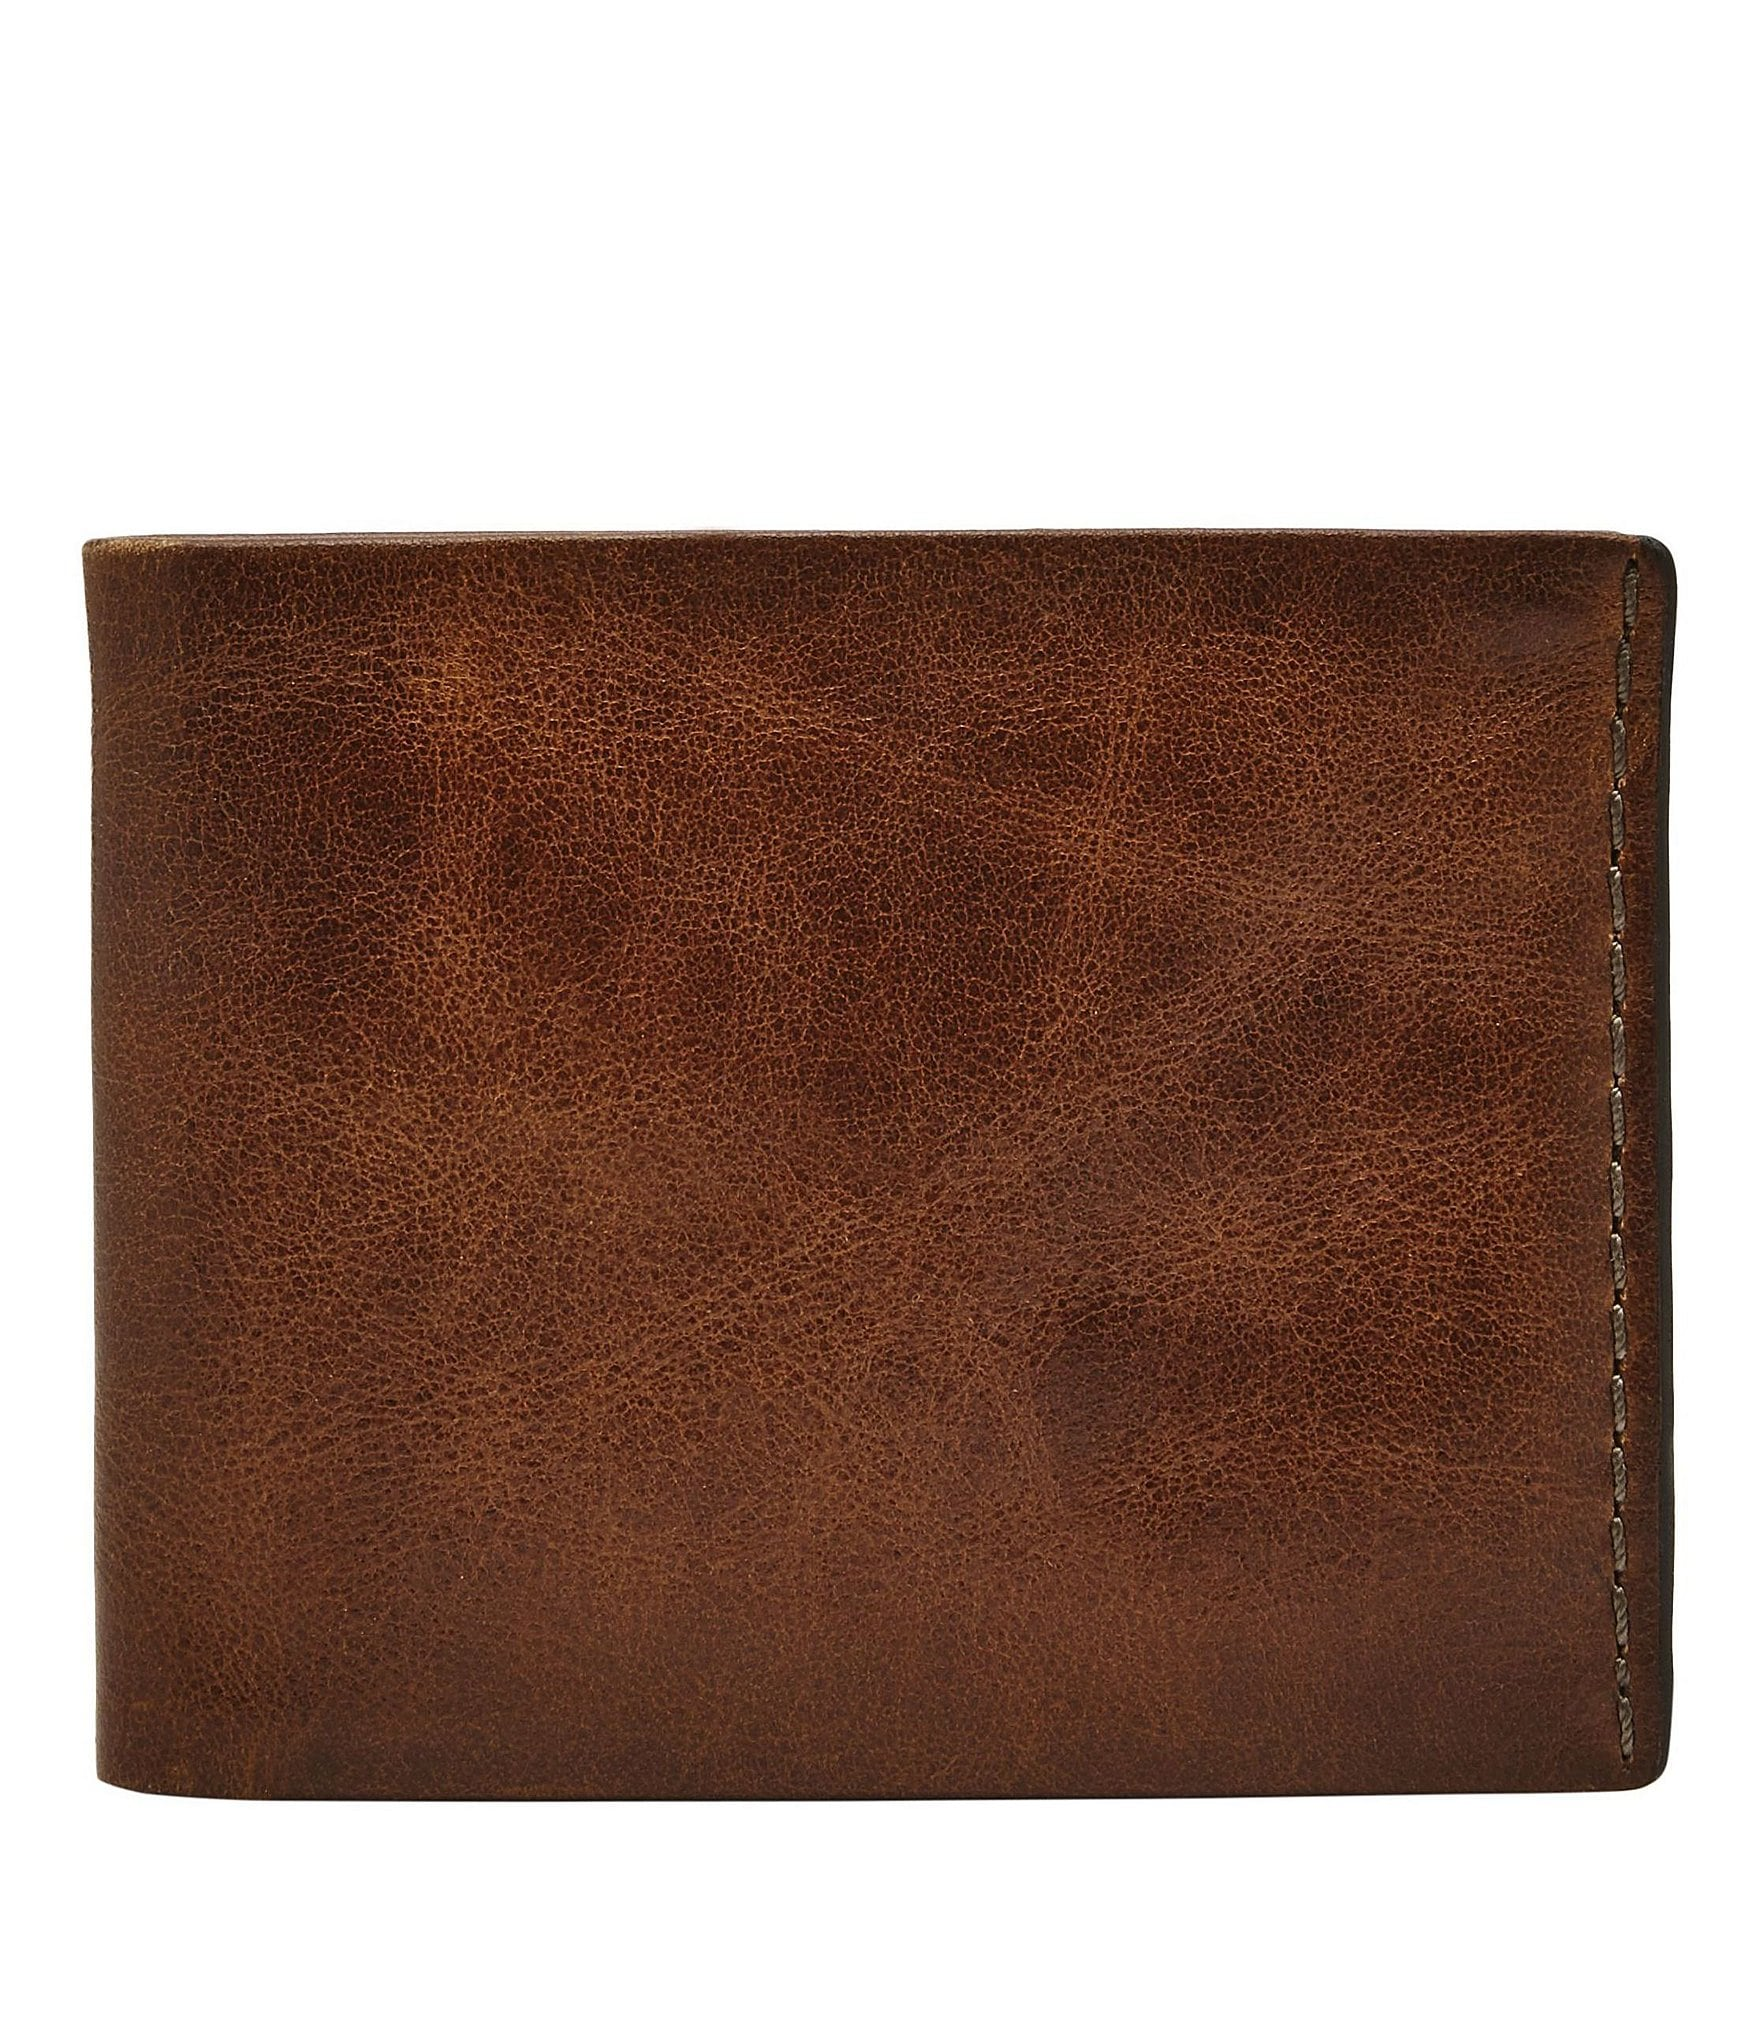 3f41de2f8c81 Fossil Beck Leather Bifold Wallet with Flip ID